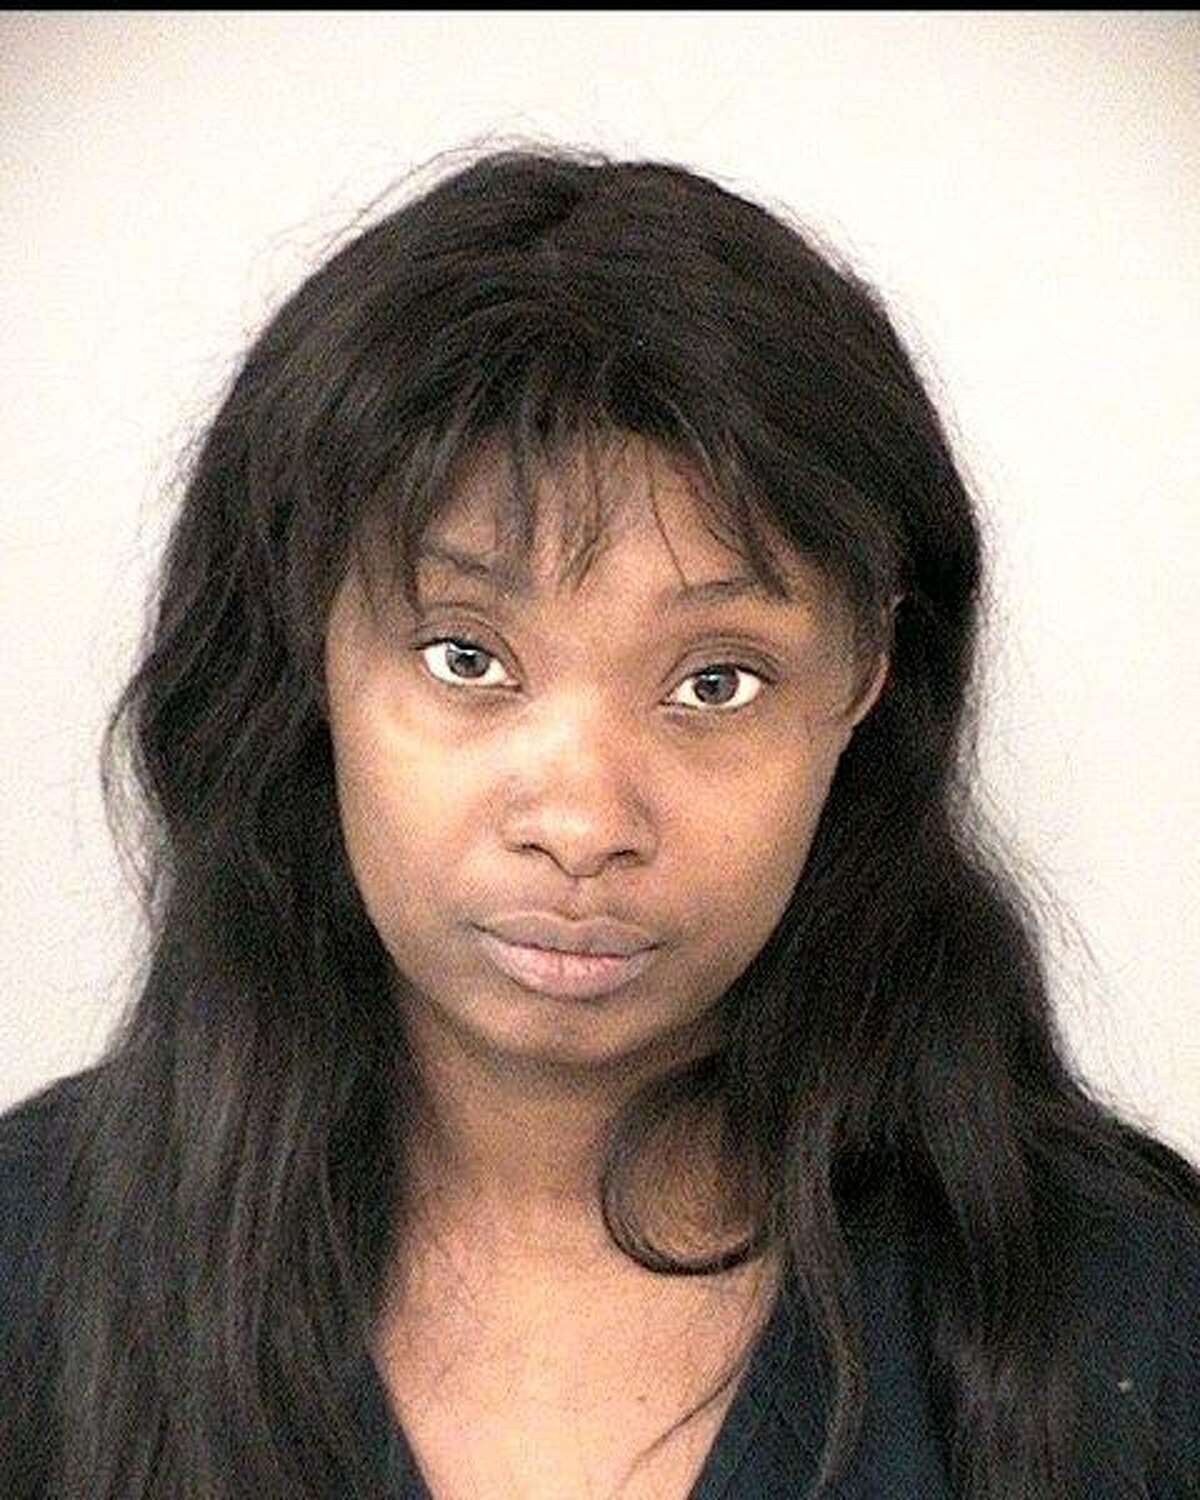 Estoshia Roddy, age 29, from Fort Bend County, was arrested March 15, 2021, for allegedly sexually assaulting a child.